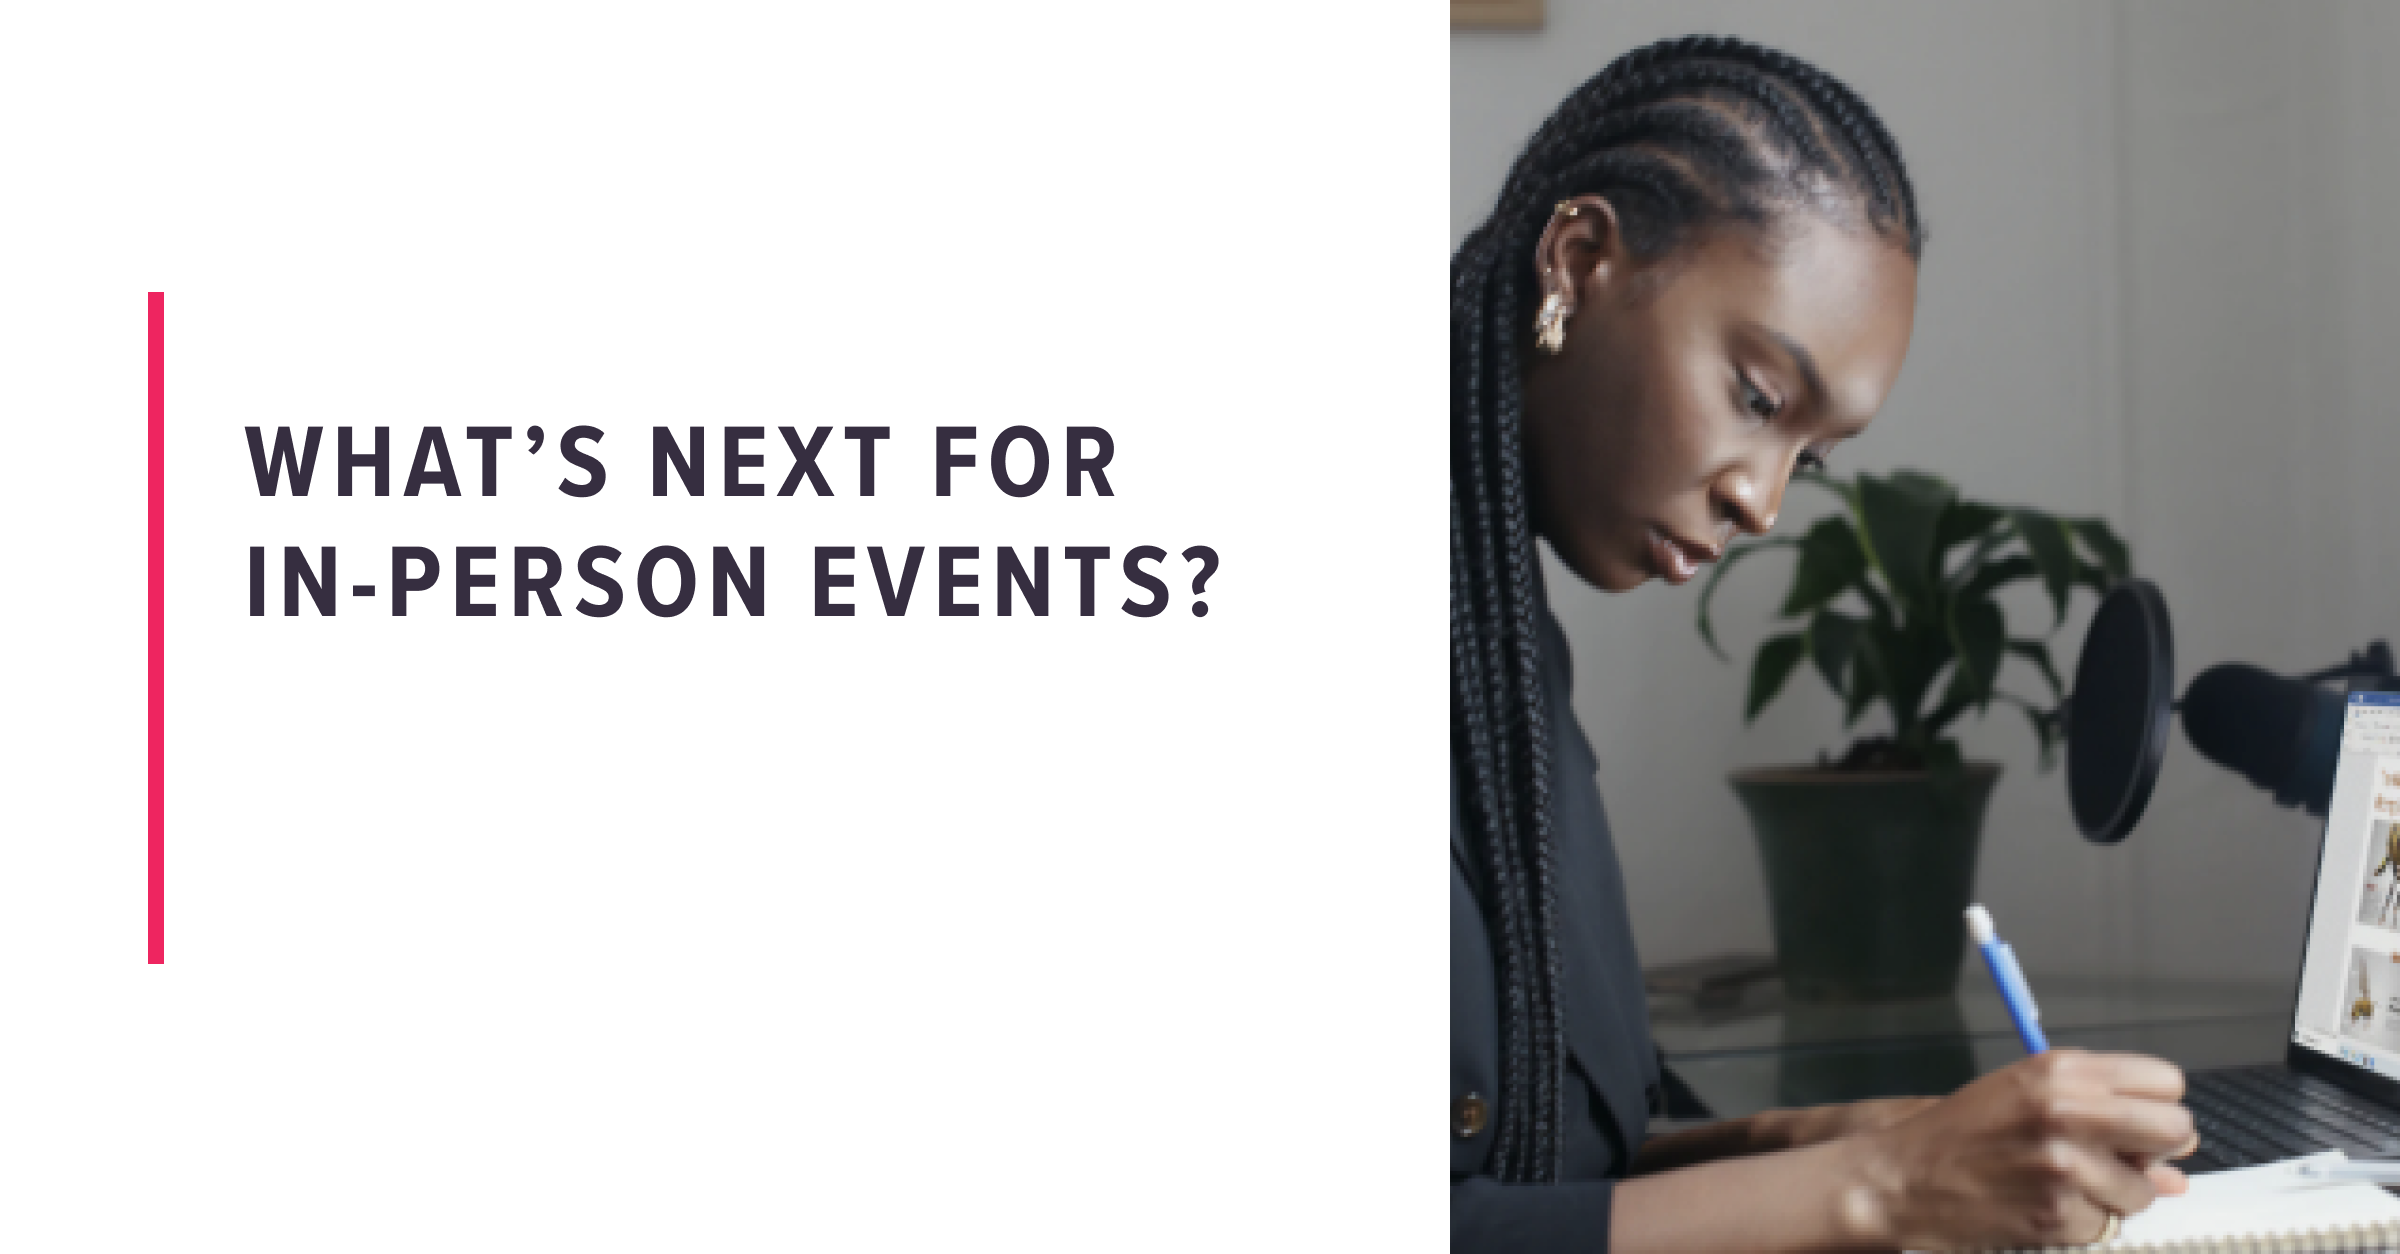 What's next for in person events?